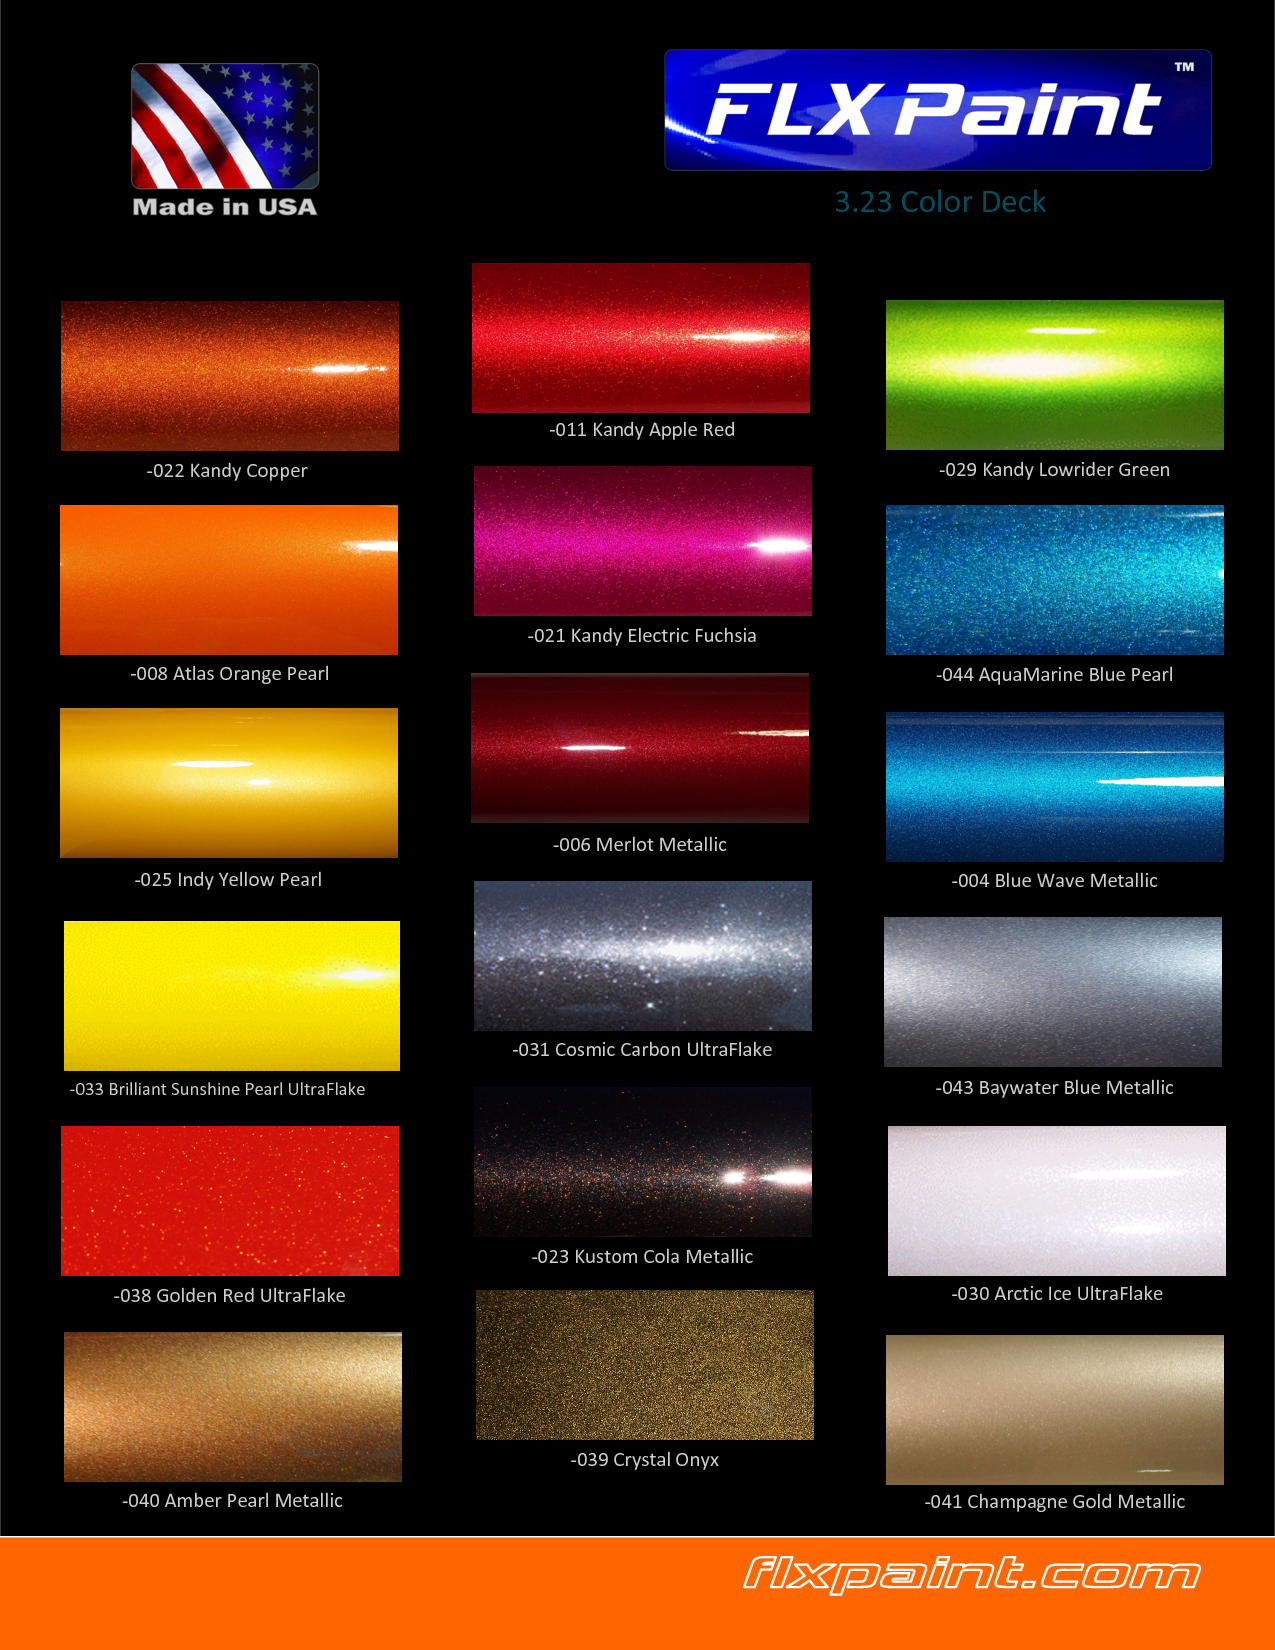 Orange Car Paint Color Chart : orange, paint, color, chart, Purple, Color, Chart, Paint, Colors,, Painting,